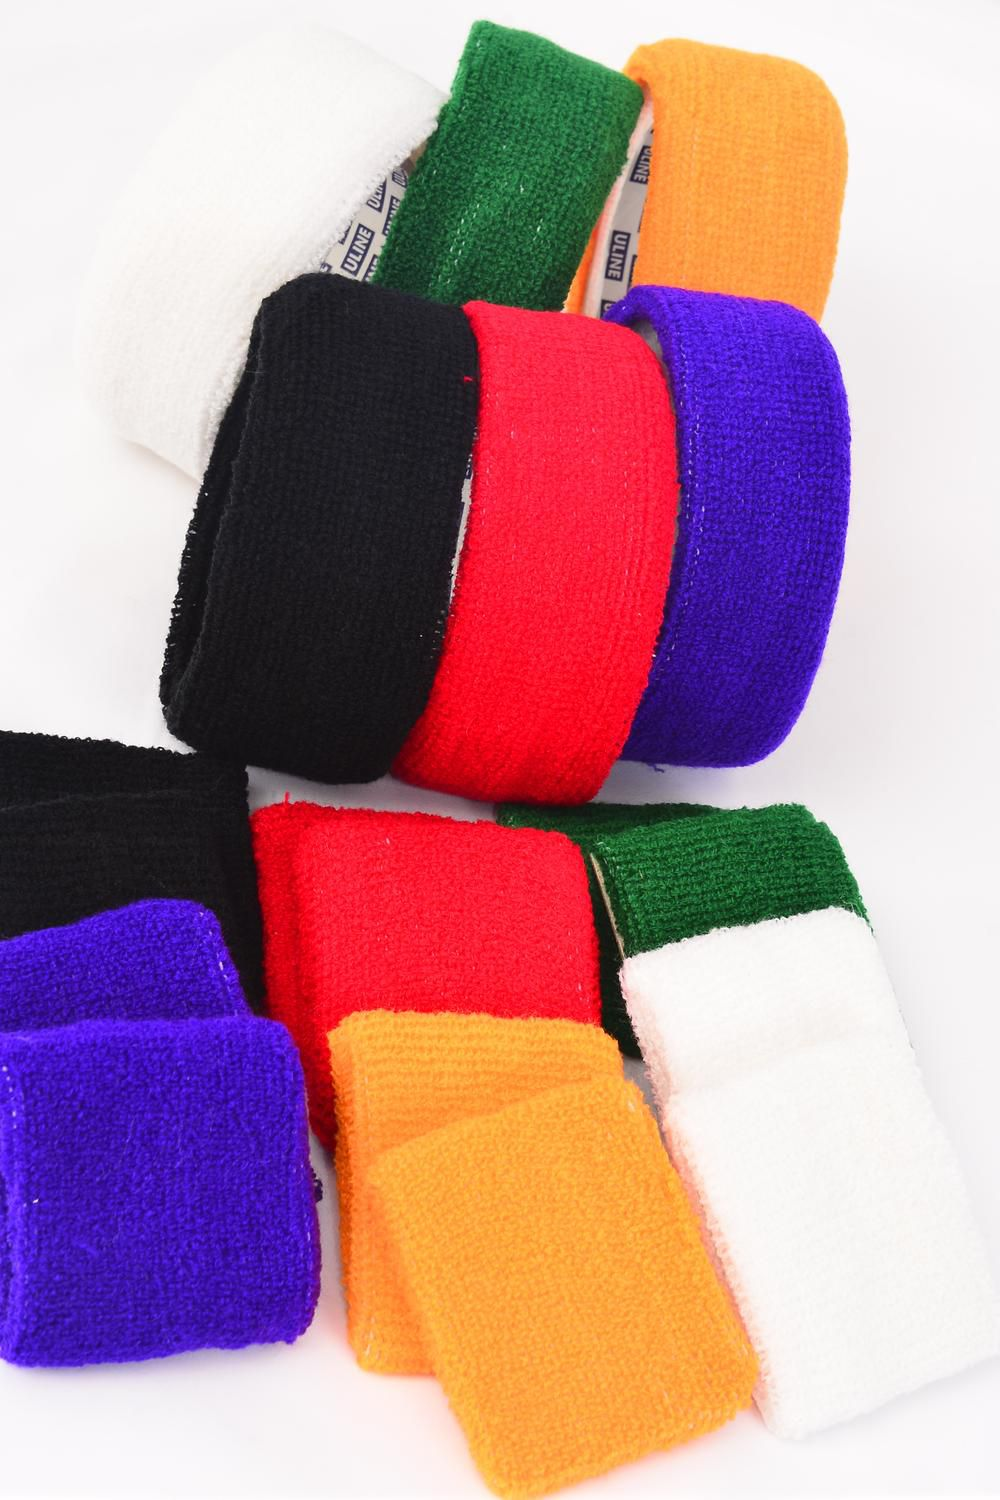 "Sweatband & Wrist Band Sets/DZ **Multi** Size Head Band-2""/5.08 cm,Wrist-2.5""x 5"" Wide,2 of each Color Asst,Individual OPP Bag ."